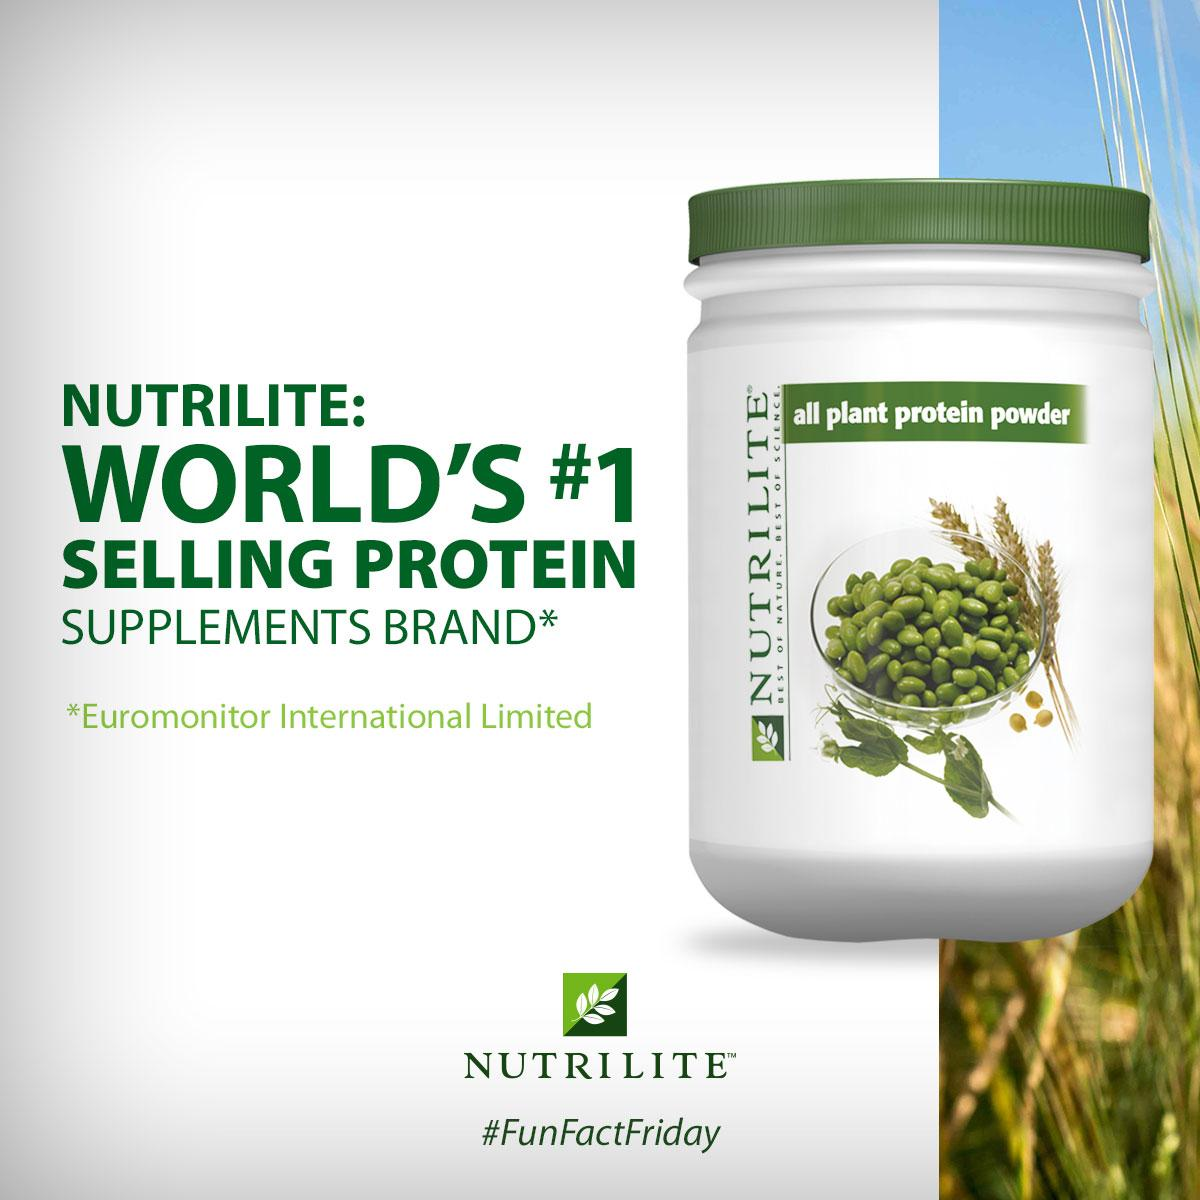 We're number 1. Power up with #Nutrilite protein: http://t.co/xAIDKyh8Vi. #FunFactFriday #FFF http://t.co/AEIjcF5WIh